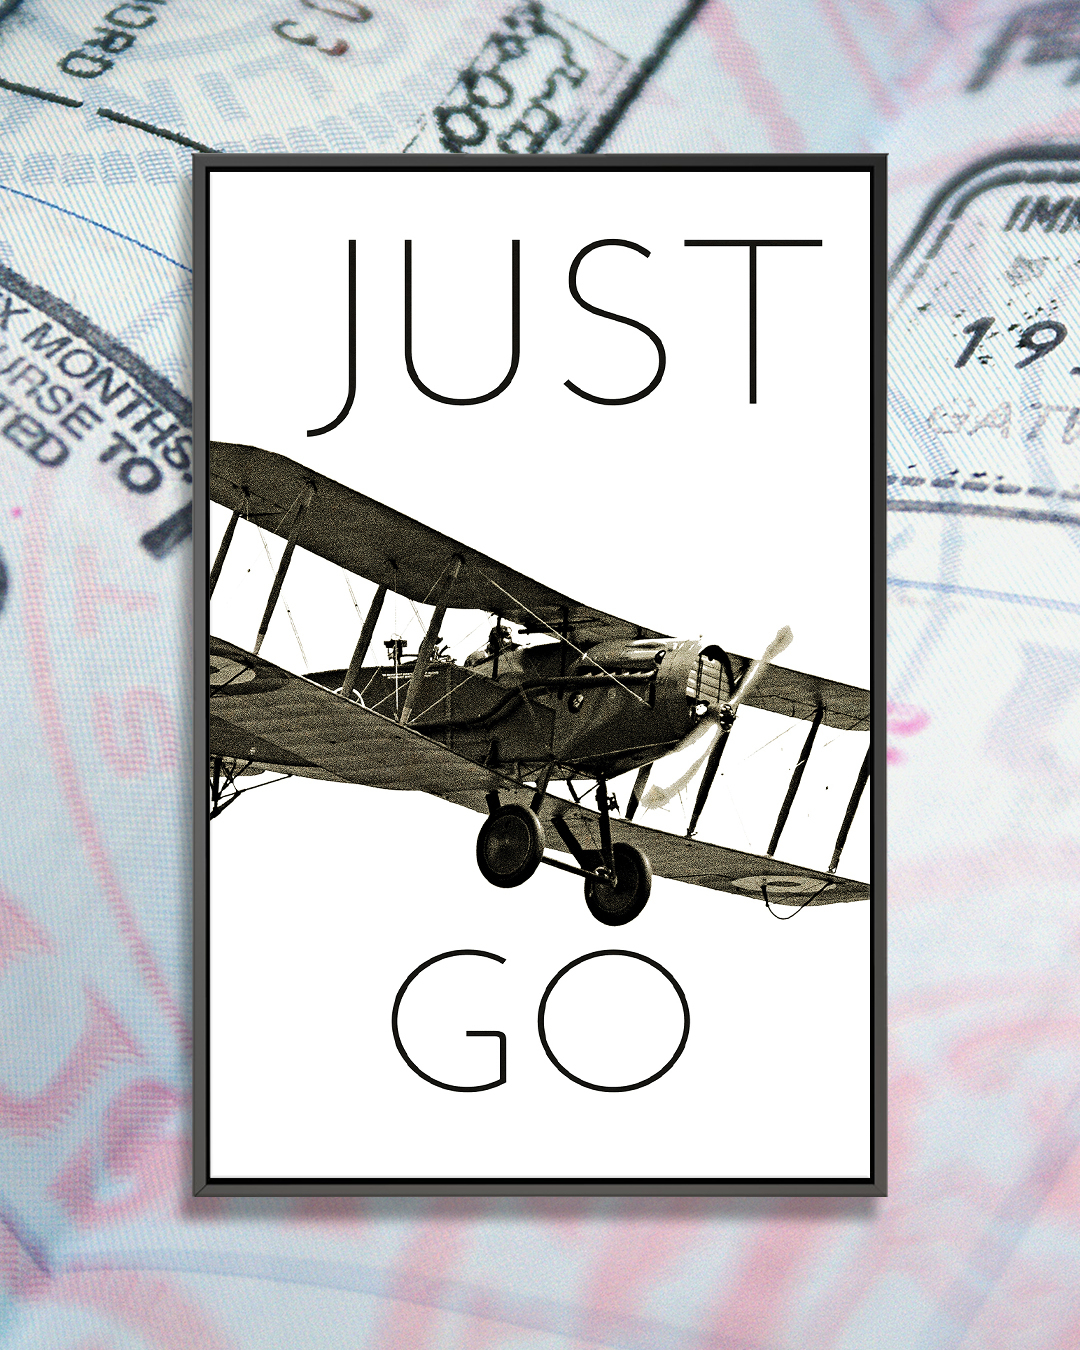 """""""Vintage Airplanes I"""" by Michael Marcon shows a black and white photo of an airplane flying through the words 'just go'."""